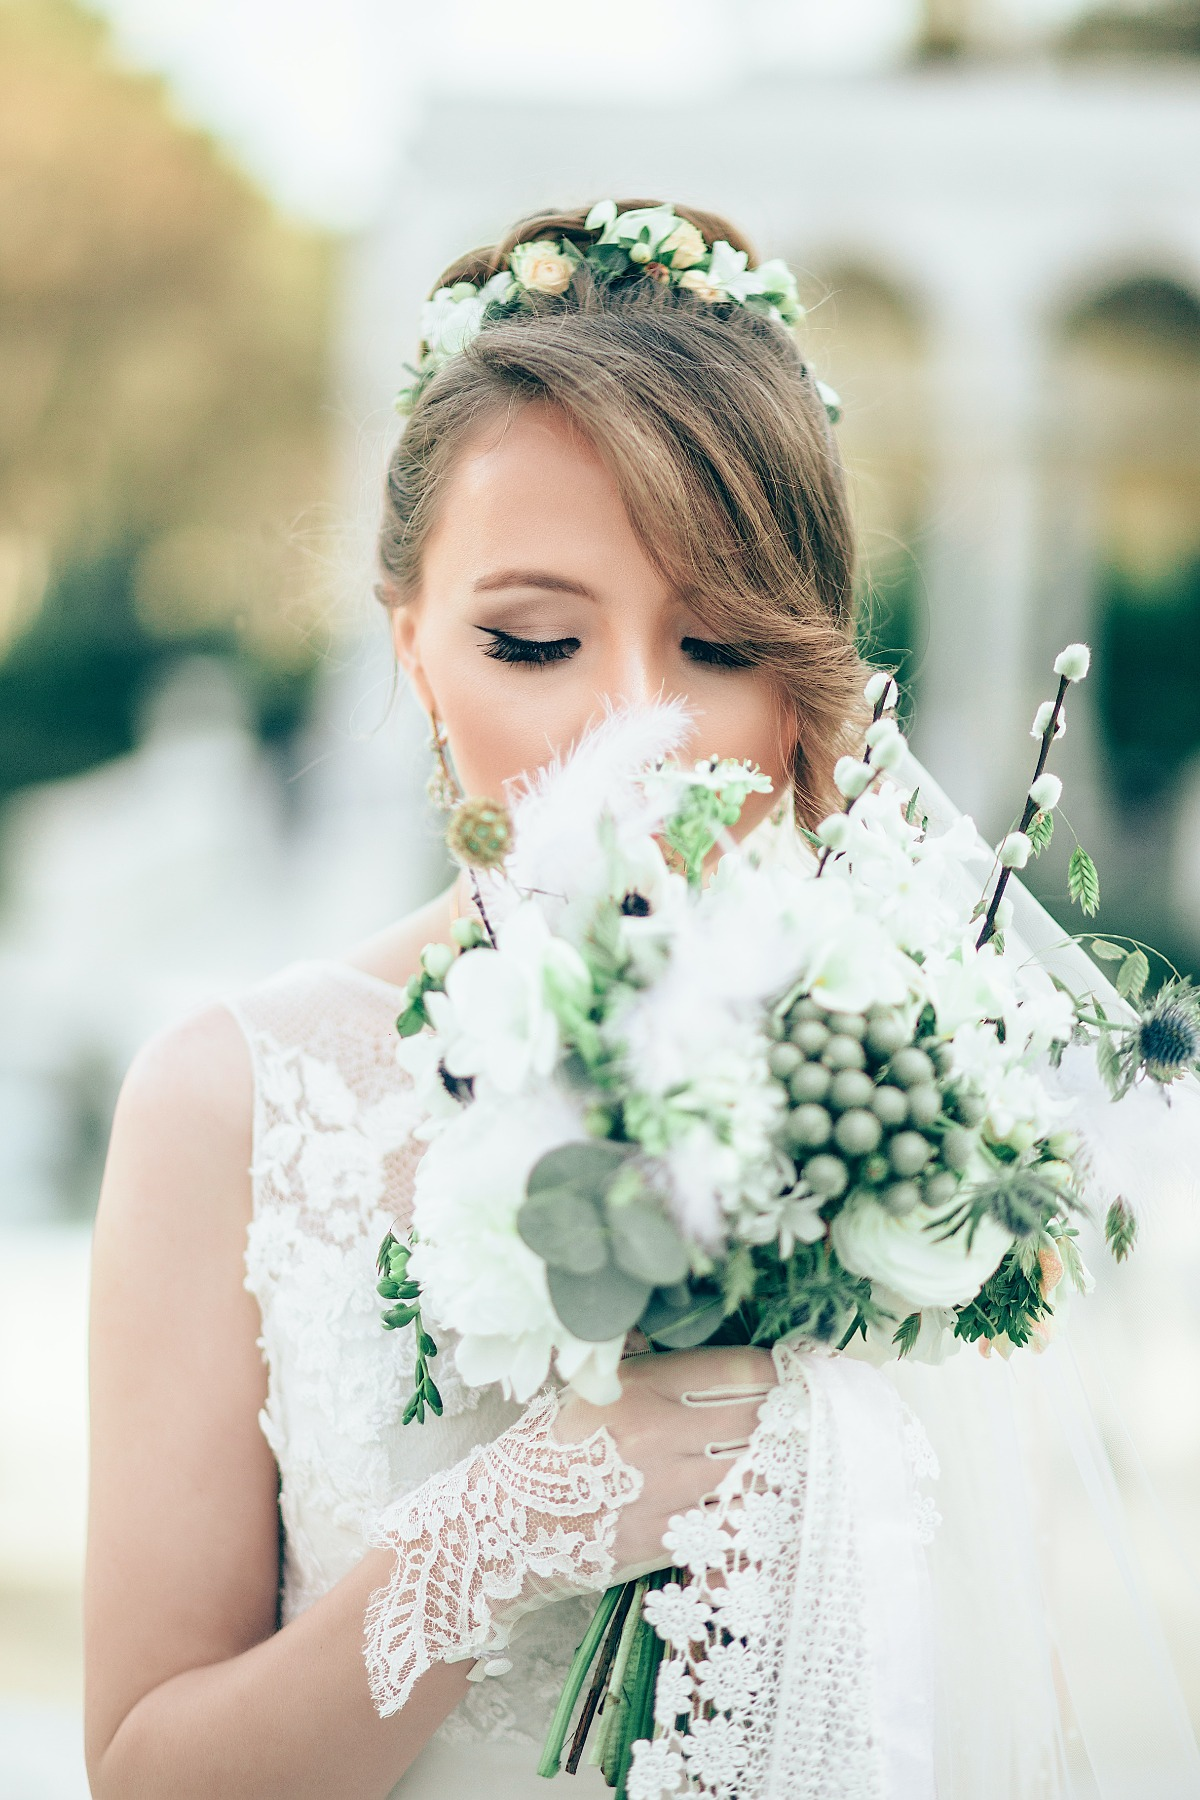 How to Arrange for an Exceptional At-home Wedding Event?